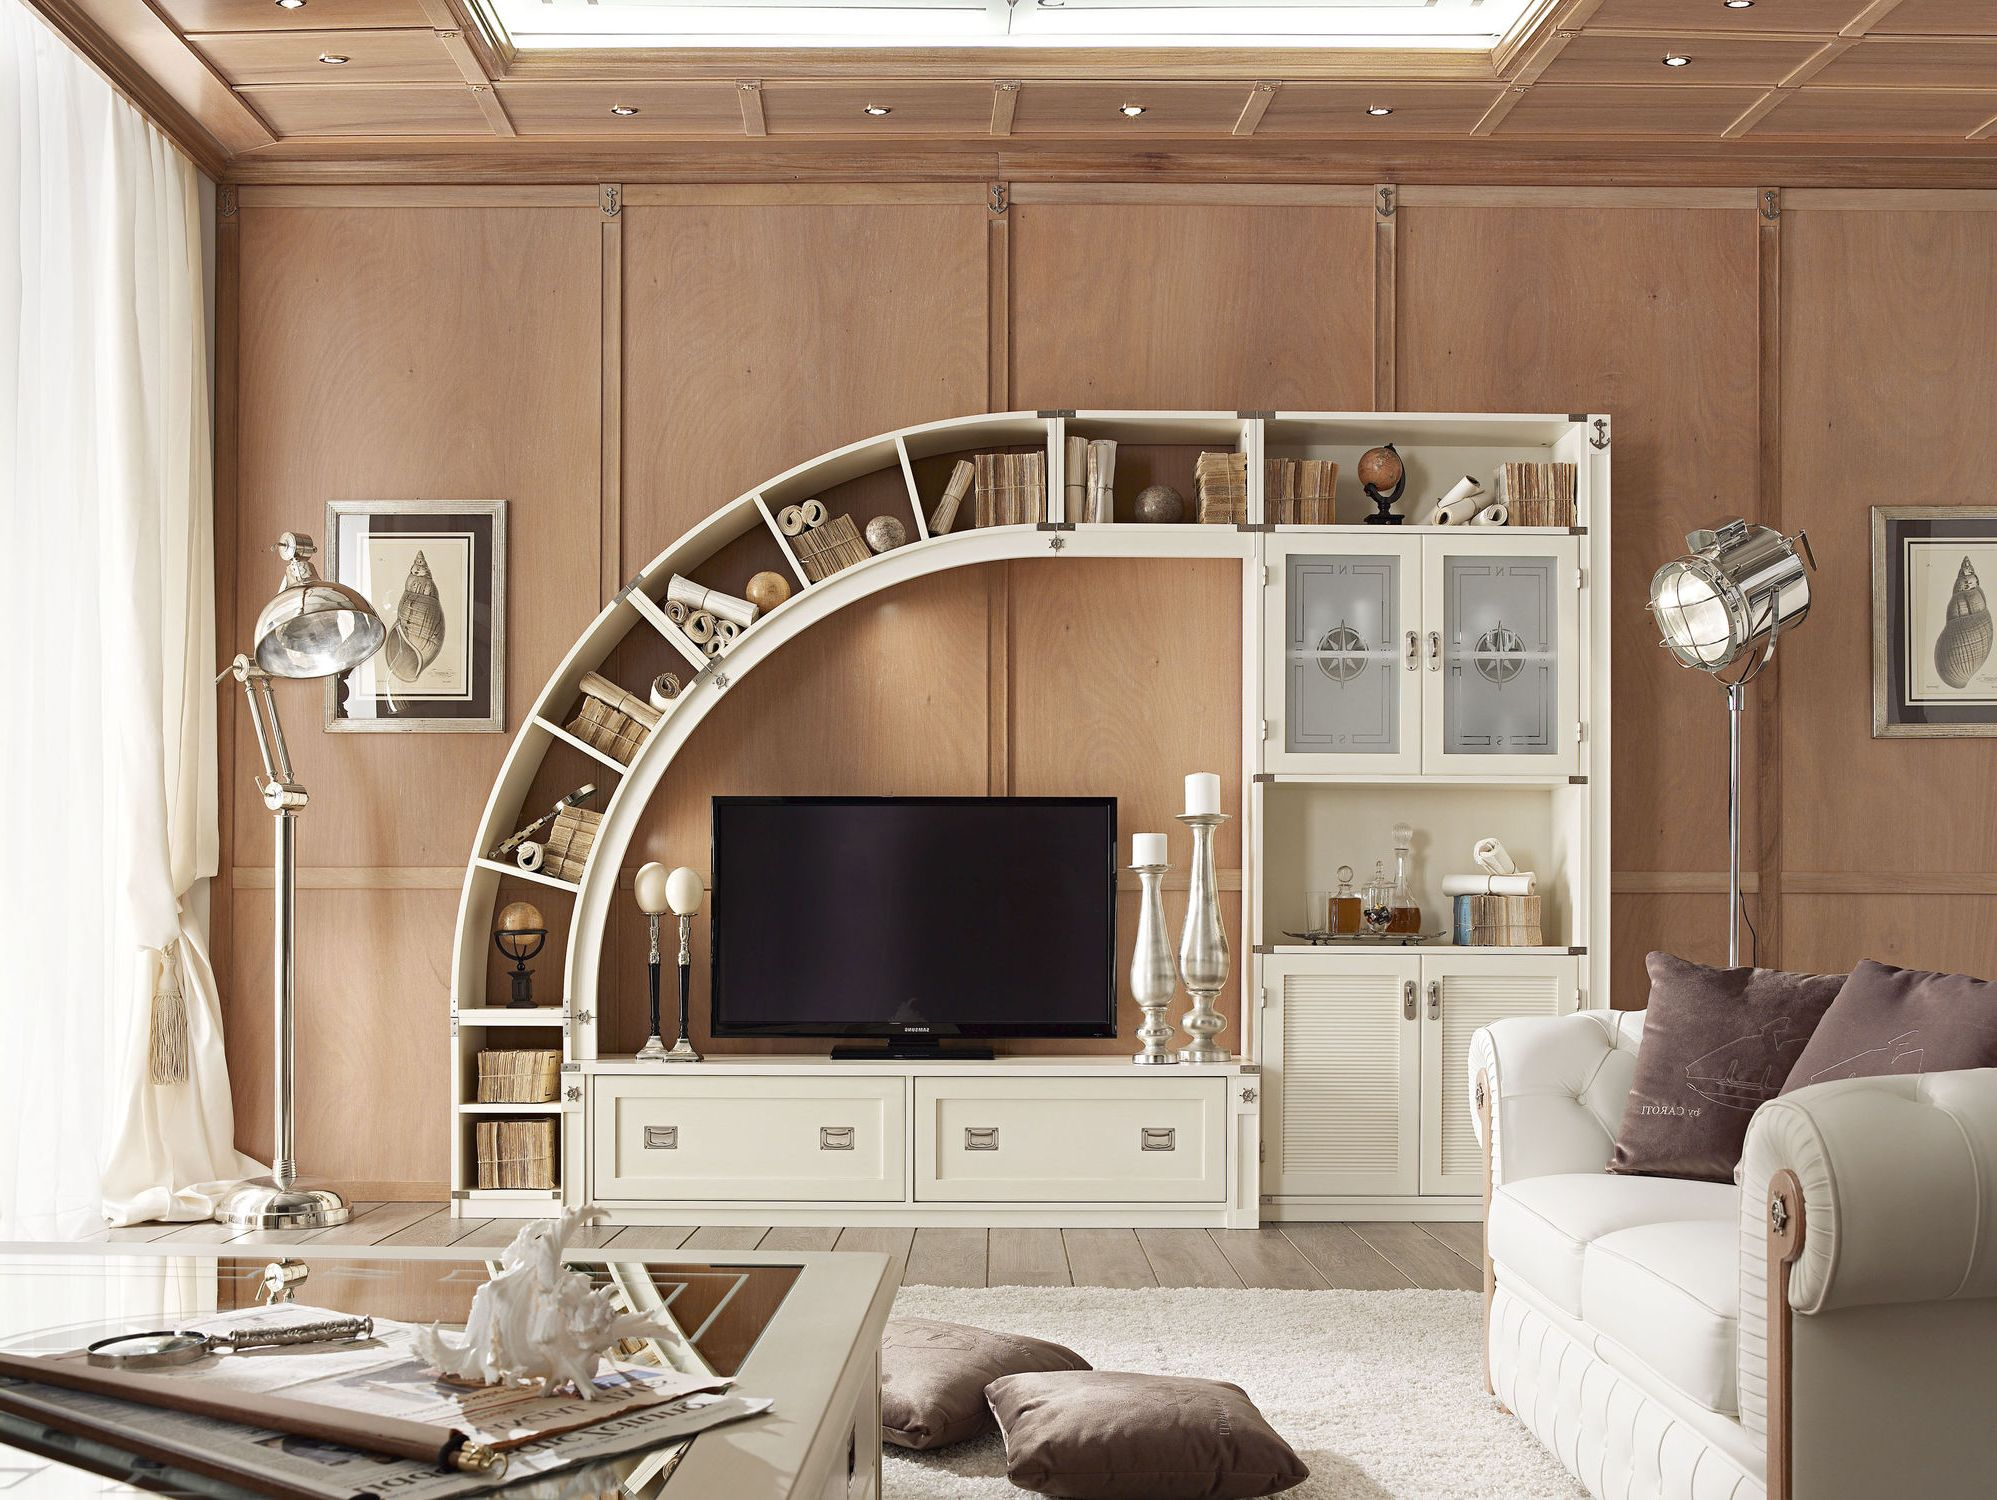 Decorative Wall Units For Living Room 8 Living Room Essentials You Cannot Ignore